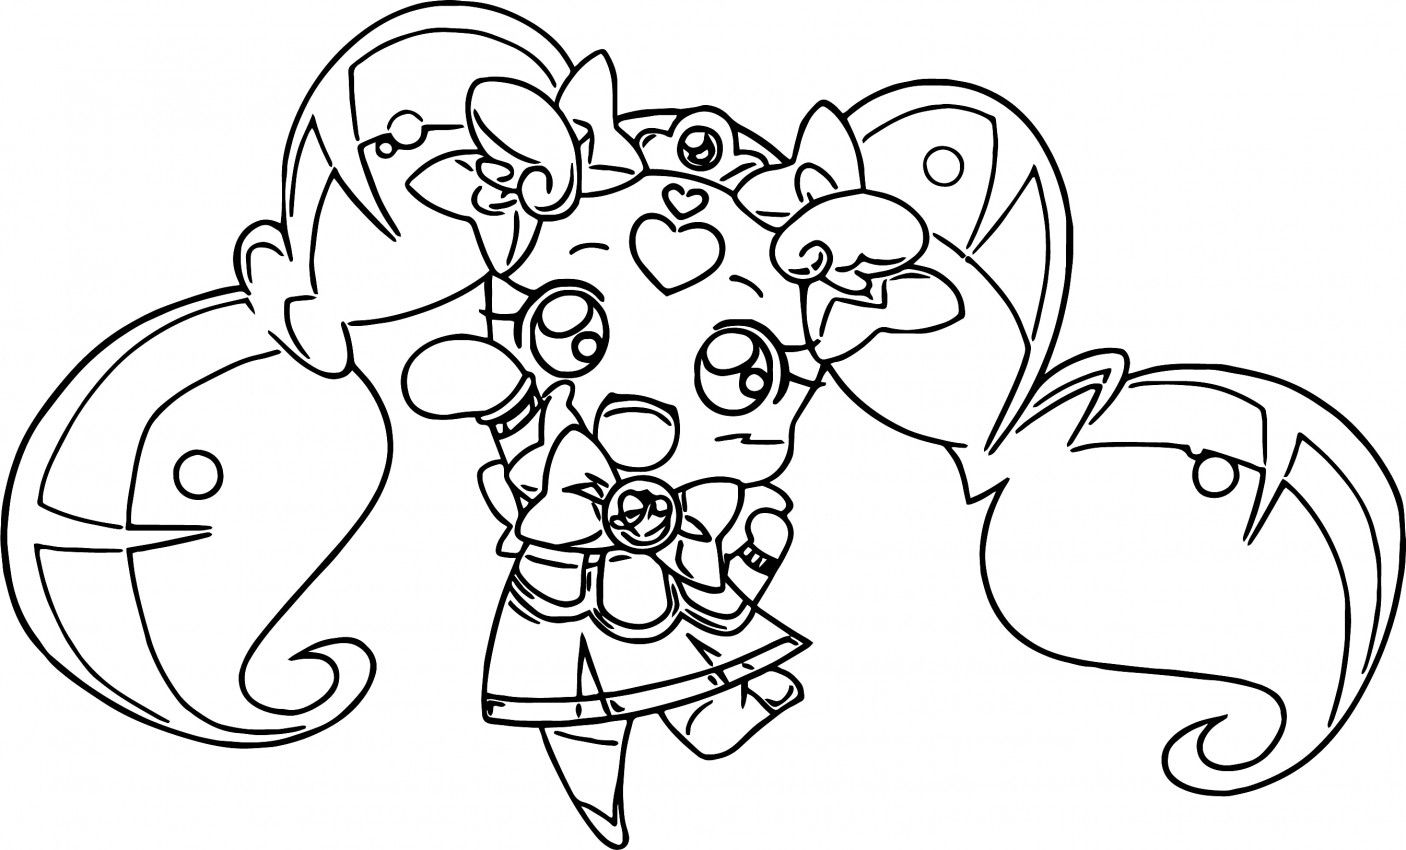 27+ Pretty Image of Glitter Force Coloring Pages Dessin